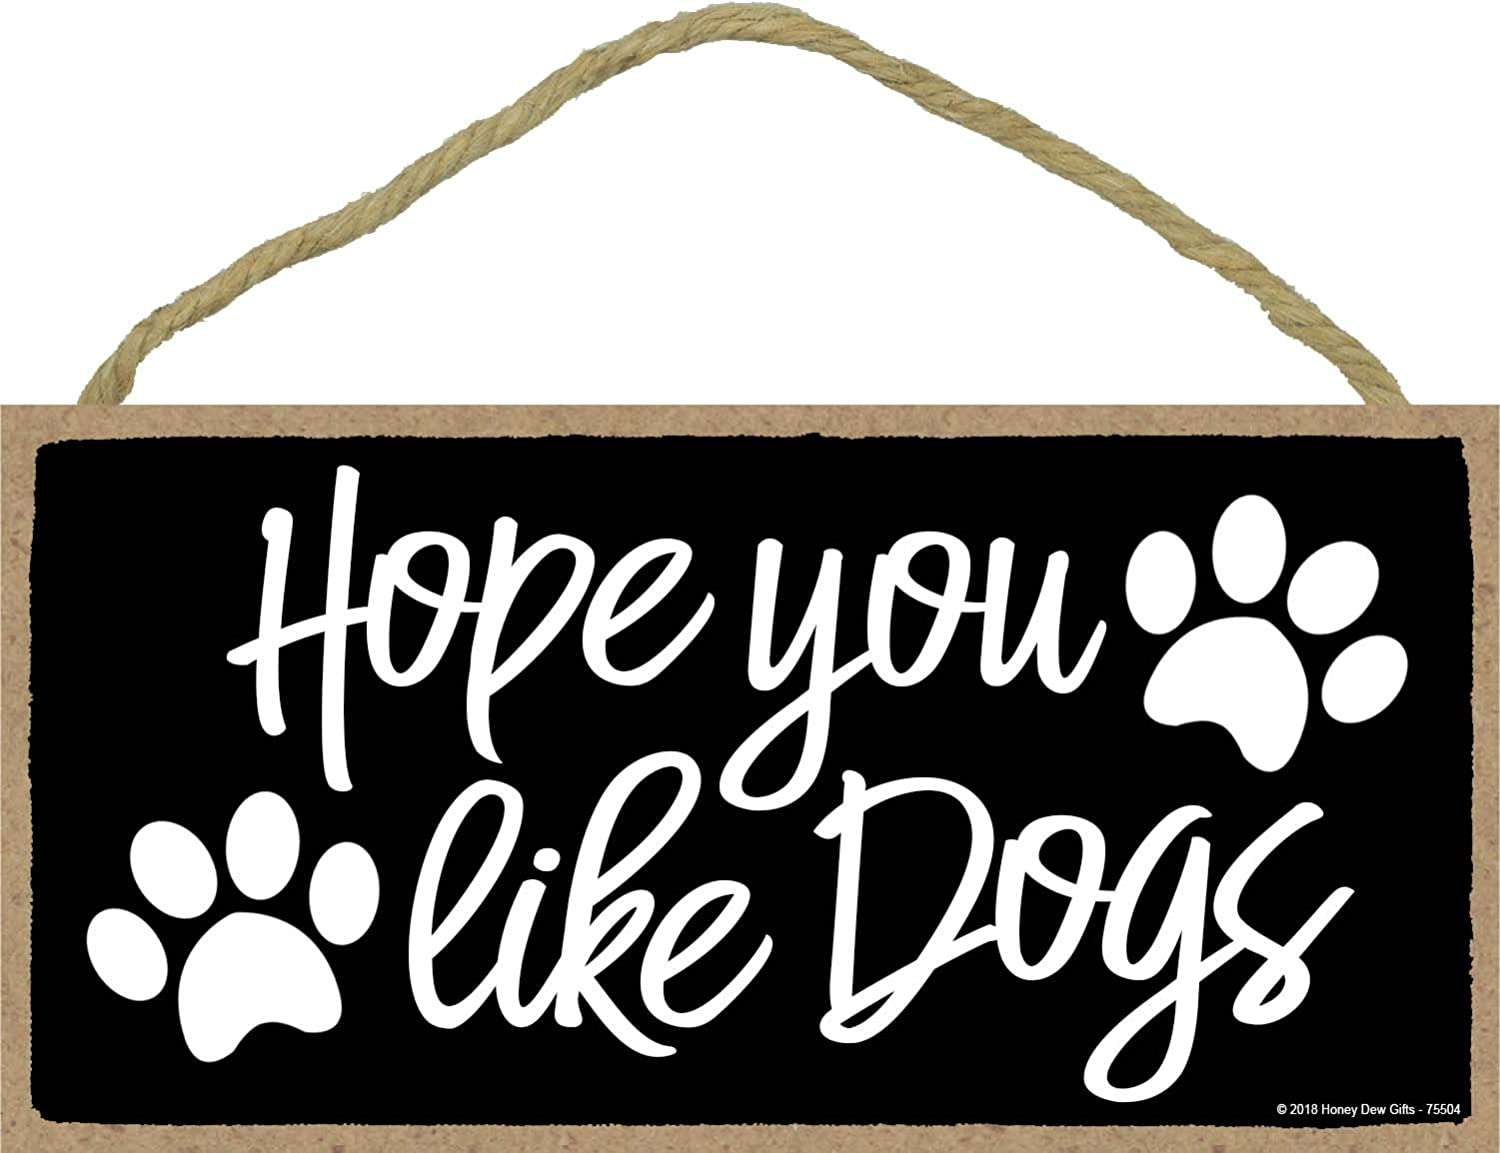 Honey Dew Gifts Hope You Like Dogs - 5 x 10 inch Hanging Dog Sign, Wall Art, Dog Decorations for The Home, Dog Wall Decor